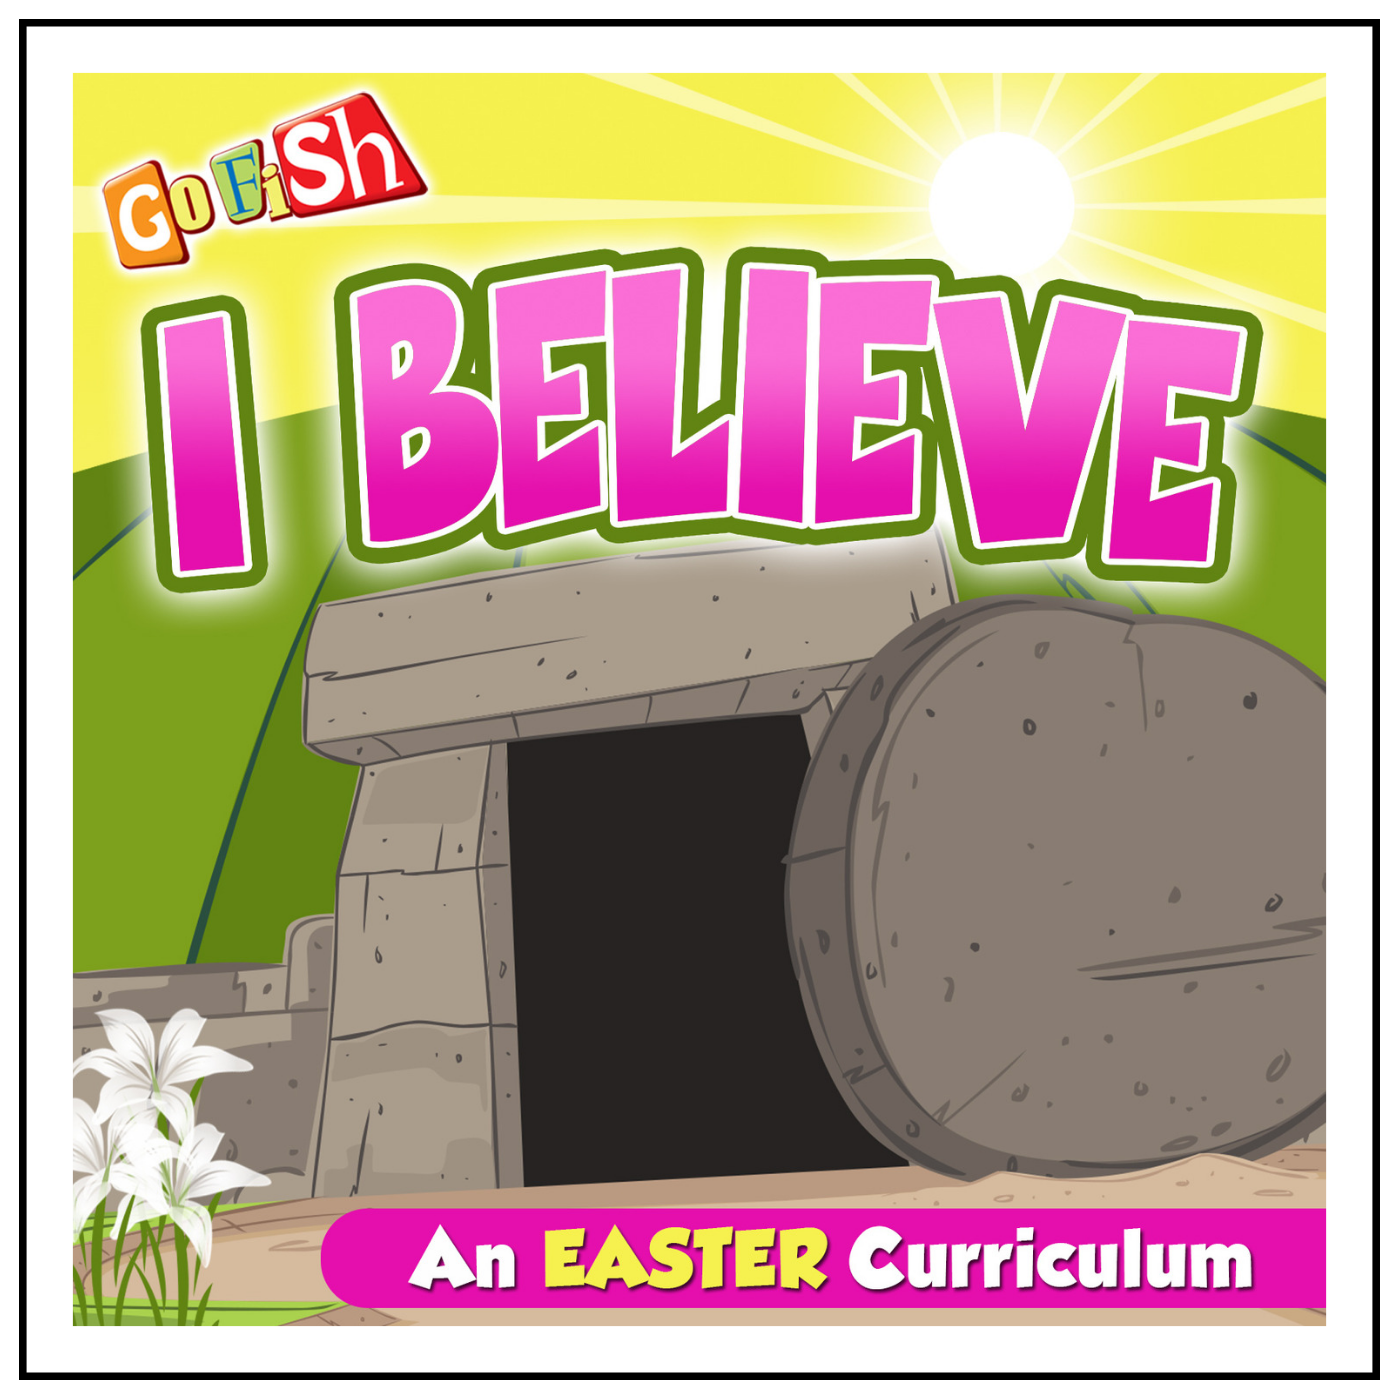 Lesson 4: I Believe Jesus is Coming Back Again! - It's time to celebrate, Jesus is risen indeed!By reading the story of Thomas in John 20, children will learn that God knows exactly what we need in order to grow in our faith. Jesus told Thomas to stop doubting and believe! His words apply to us today. In this lesson children will be reminded that Jesus is the Son of God, the Sacrifice for Sin, and the Risen King.By remembering who Jesus is, we can confidently live out our beliefs as we prepare for His return. Believing in Jesus means trusting that we will live forever with Him!